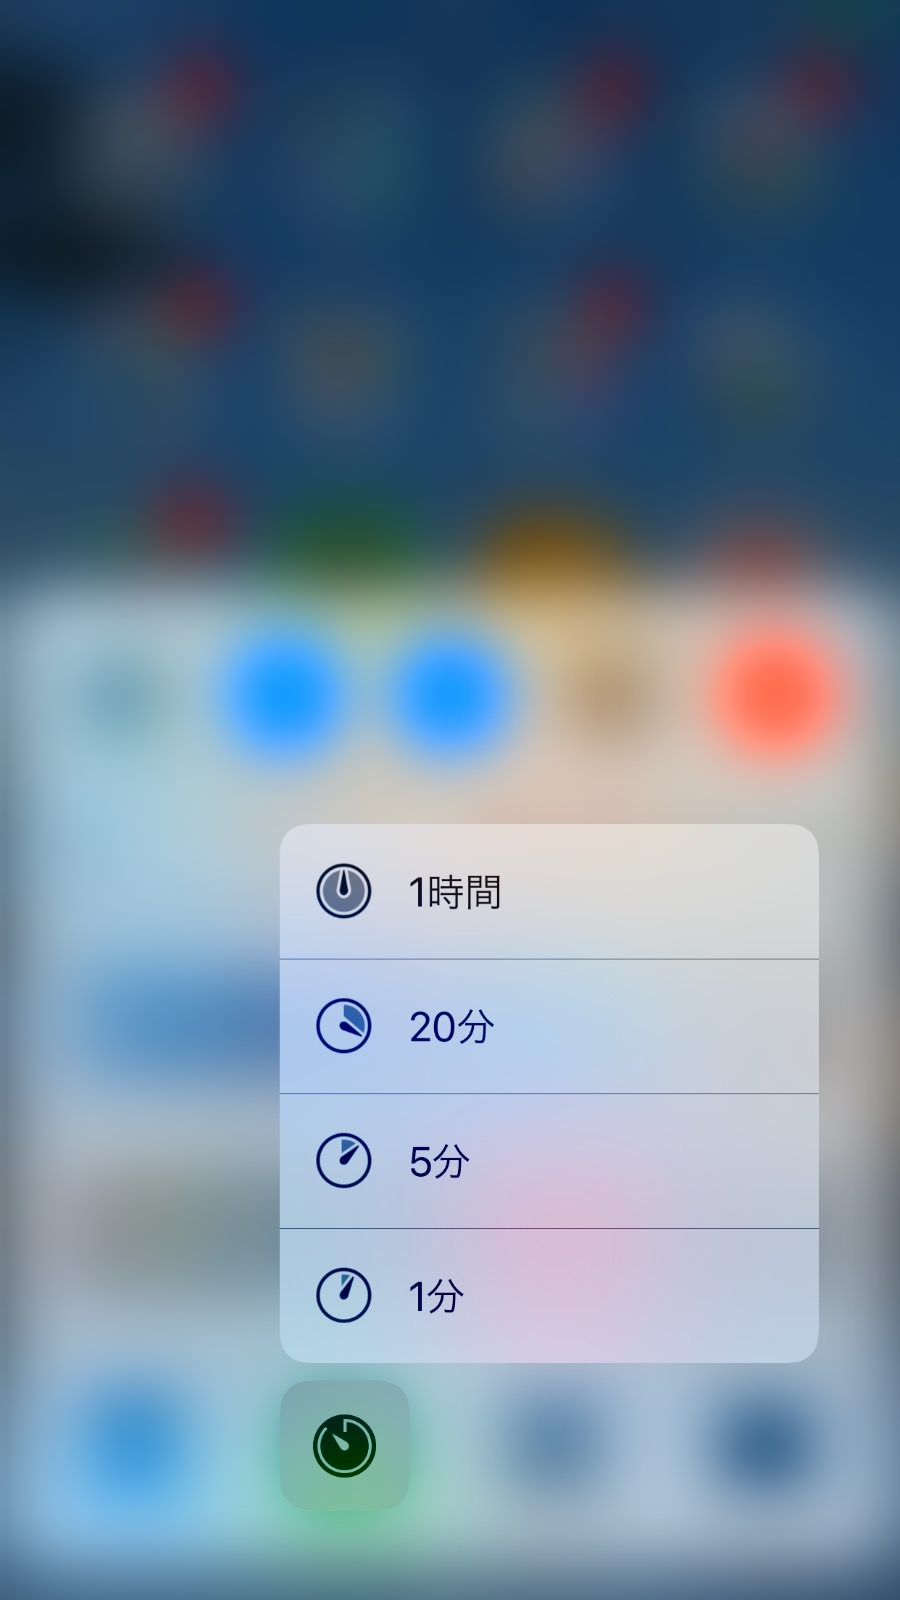 3dtouch control center 5314